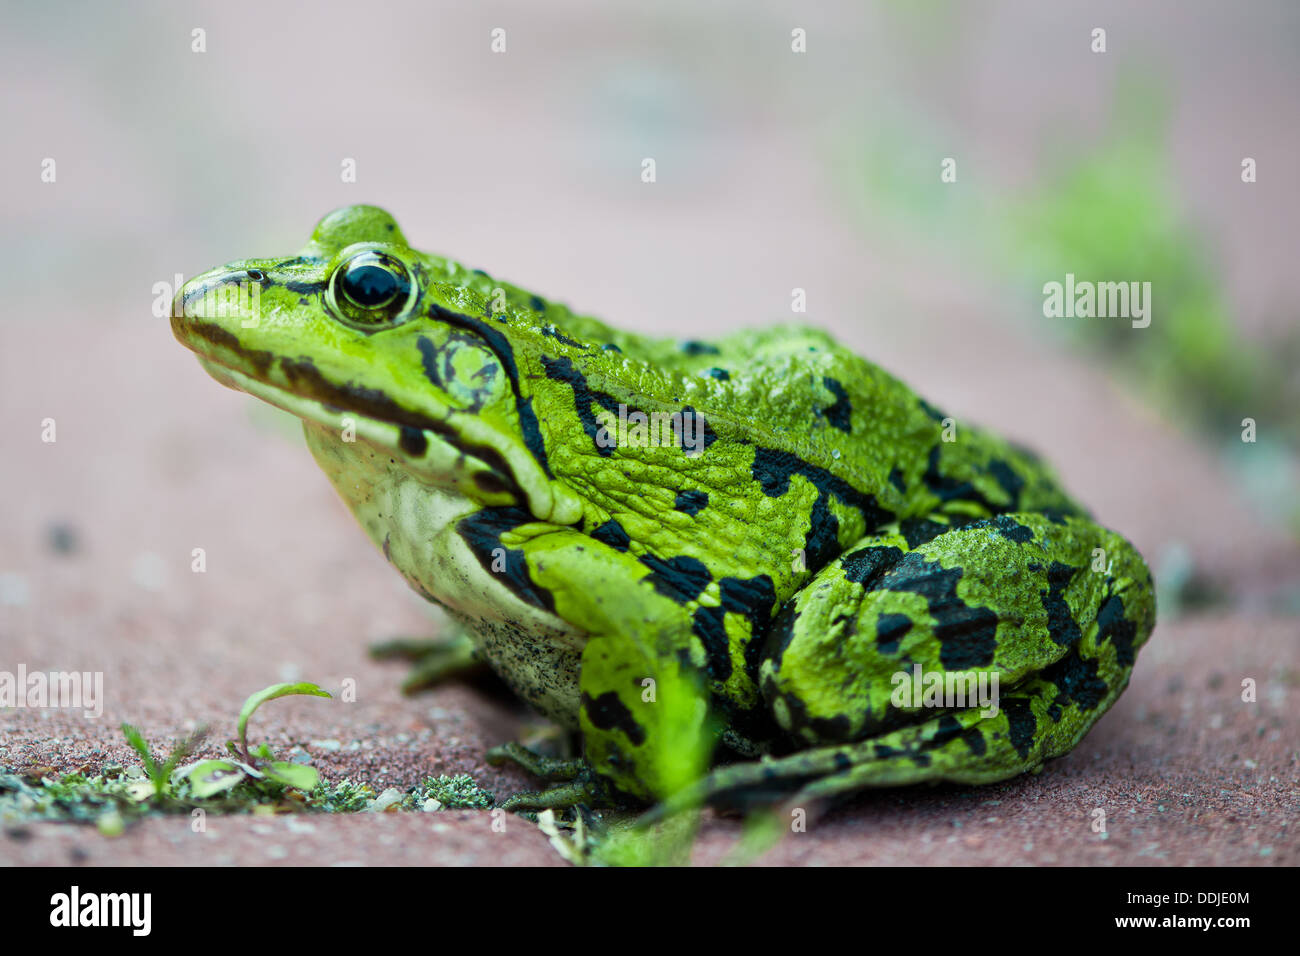 close up to frog Pelophylax lessonae - Stock Image